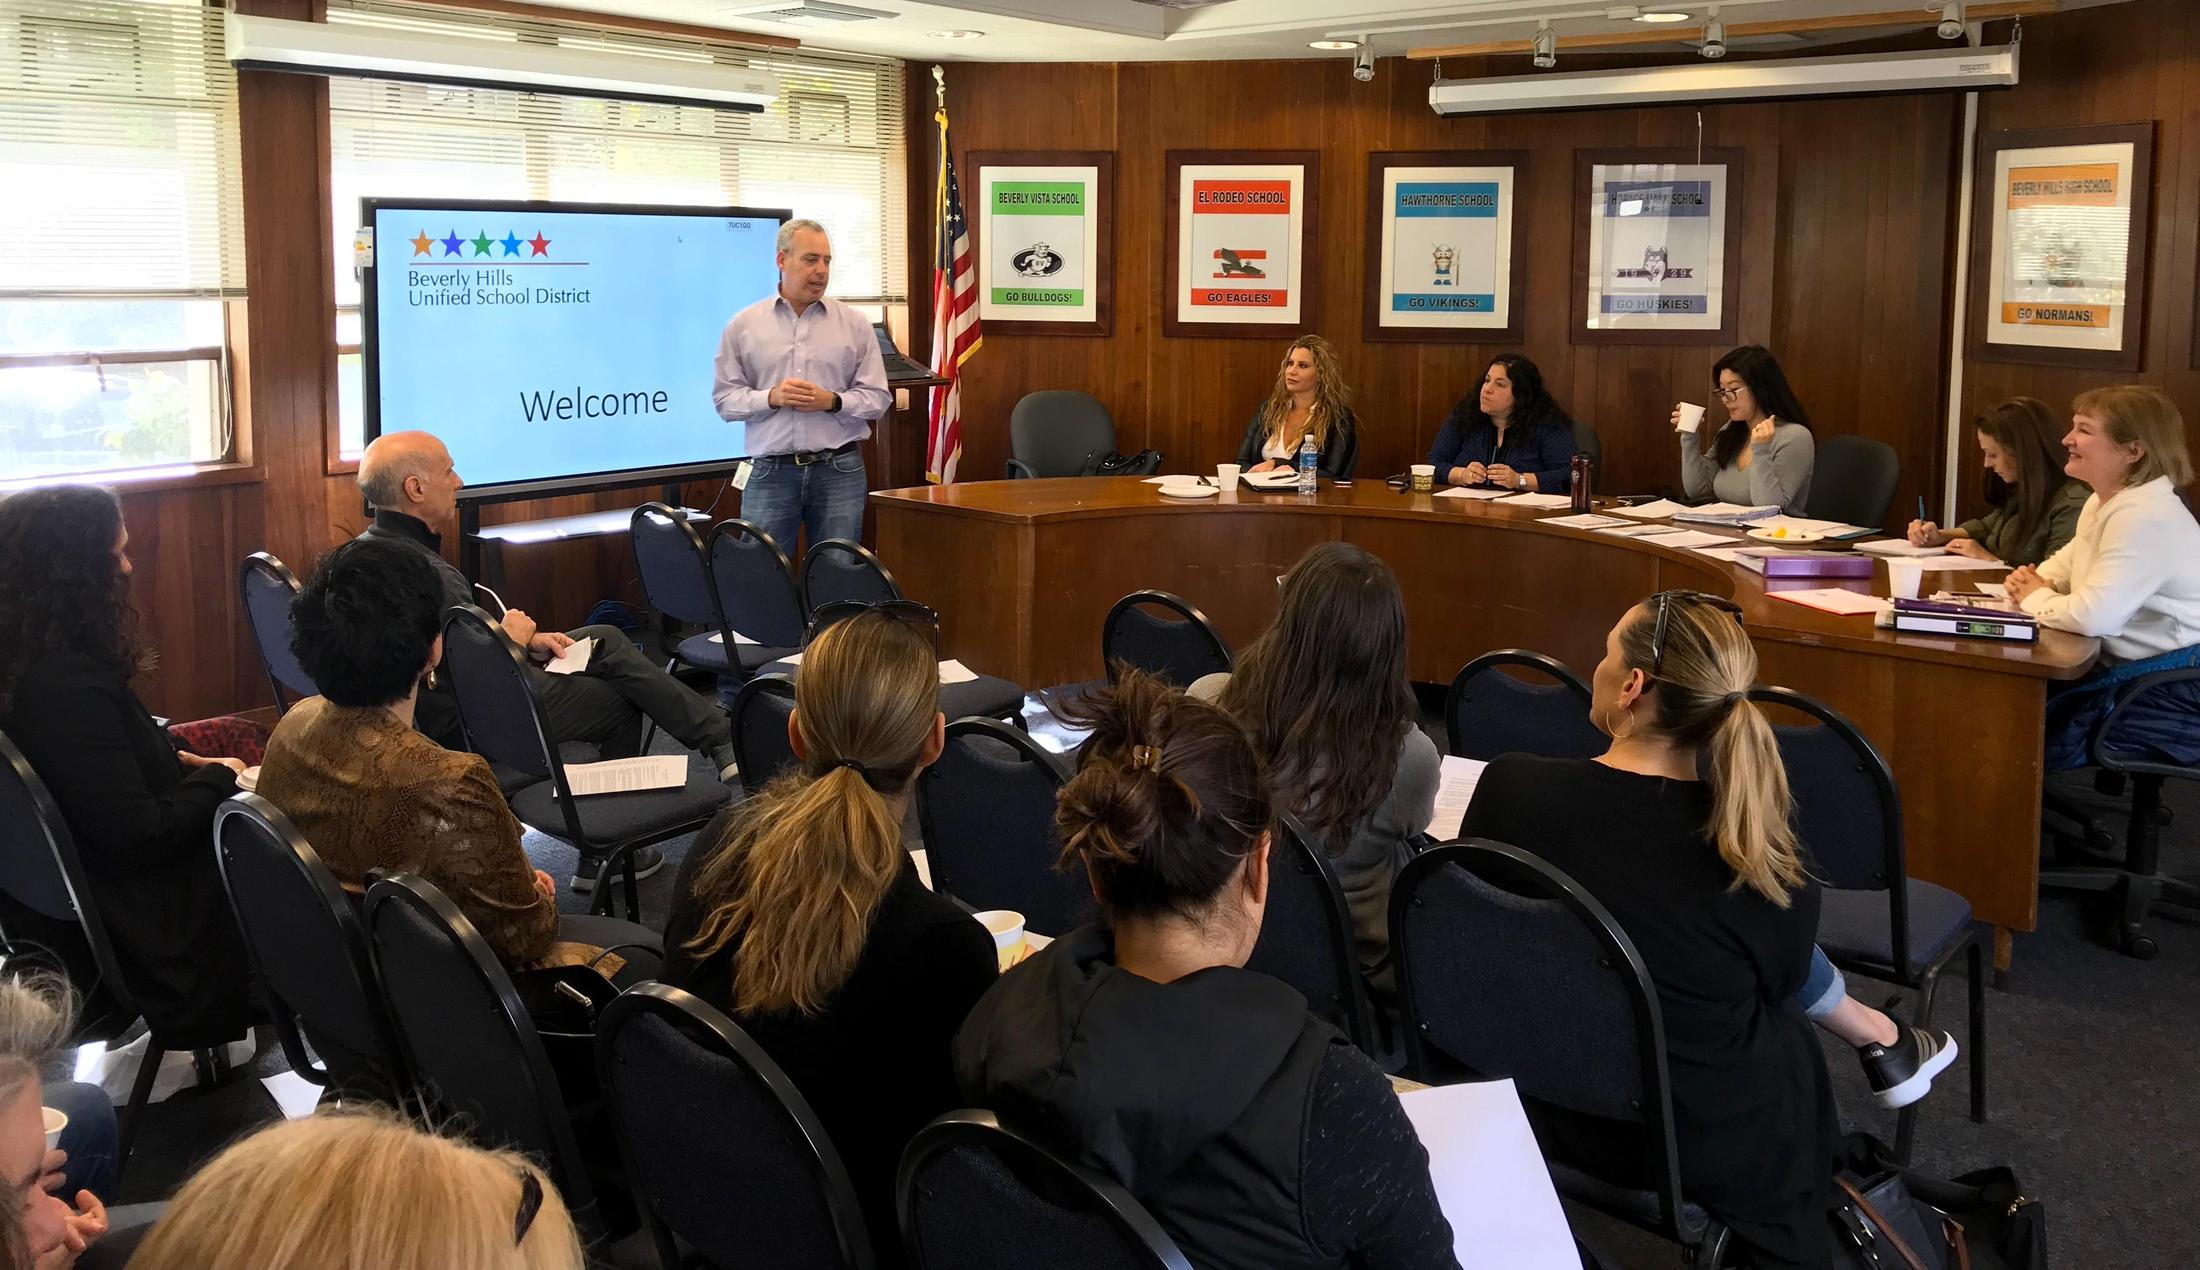 What is PTA Council? – PTA Council – Beverly Hills Unified